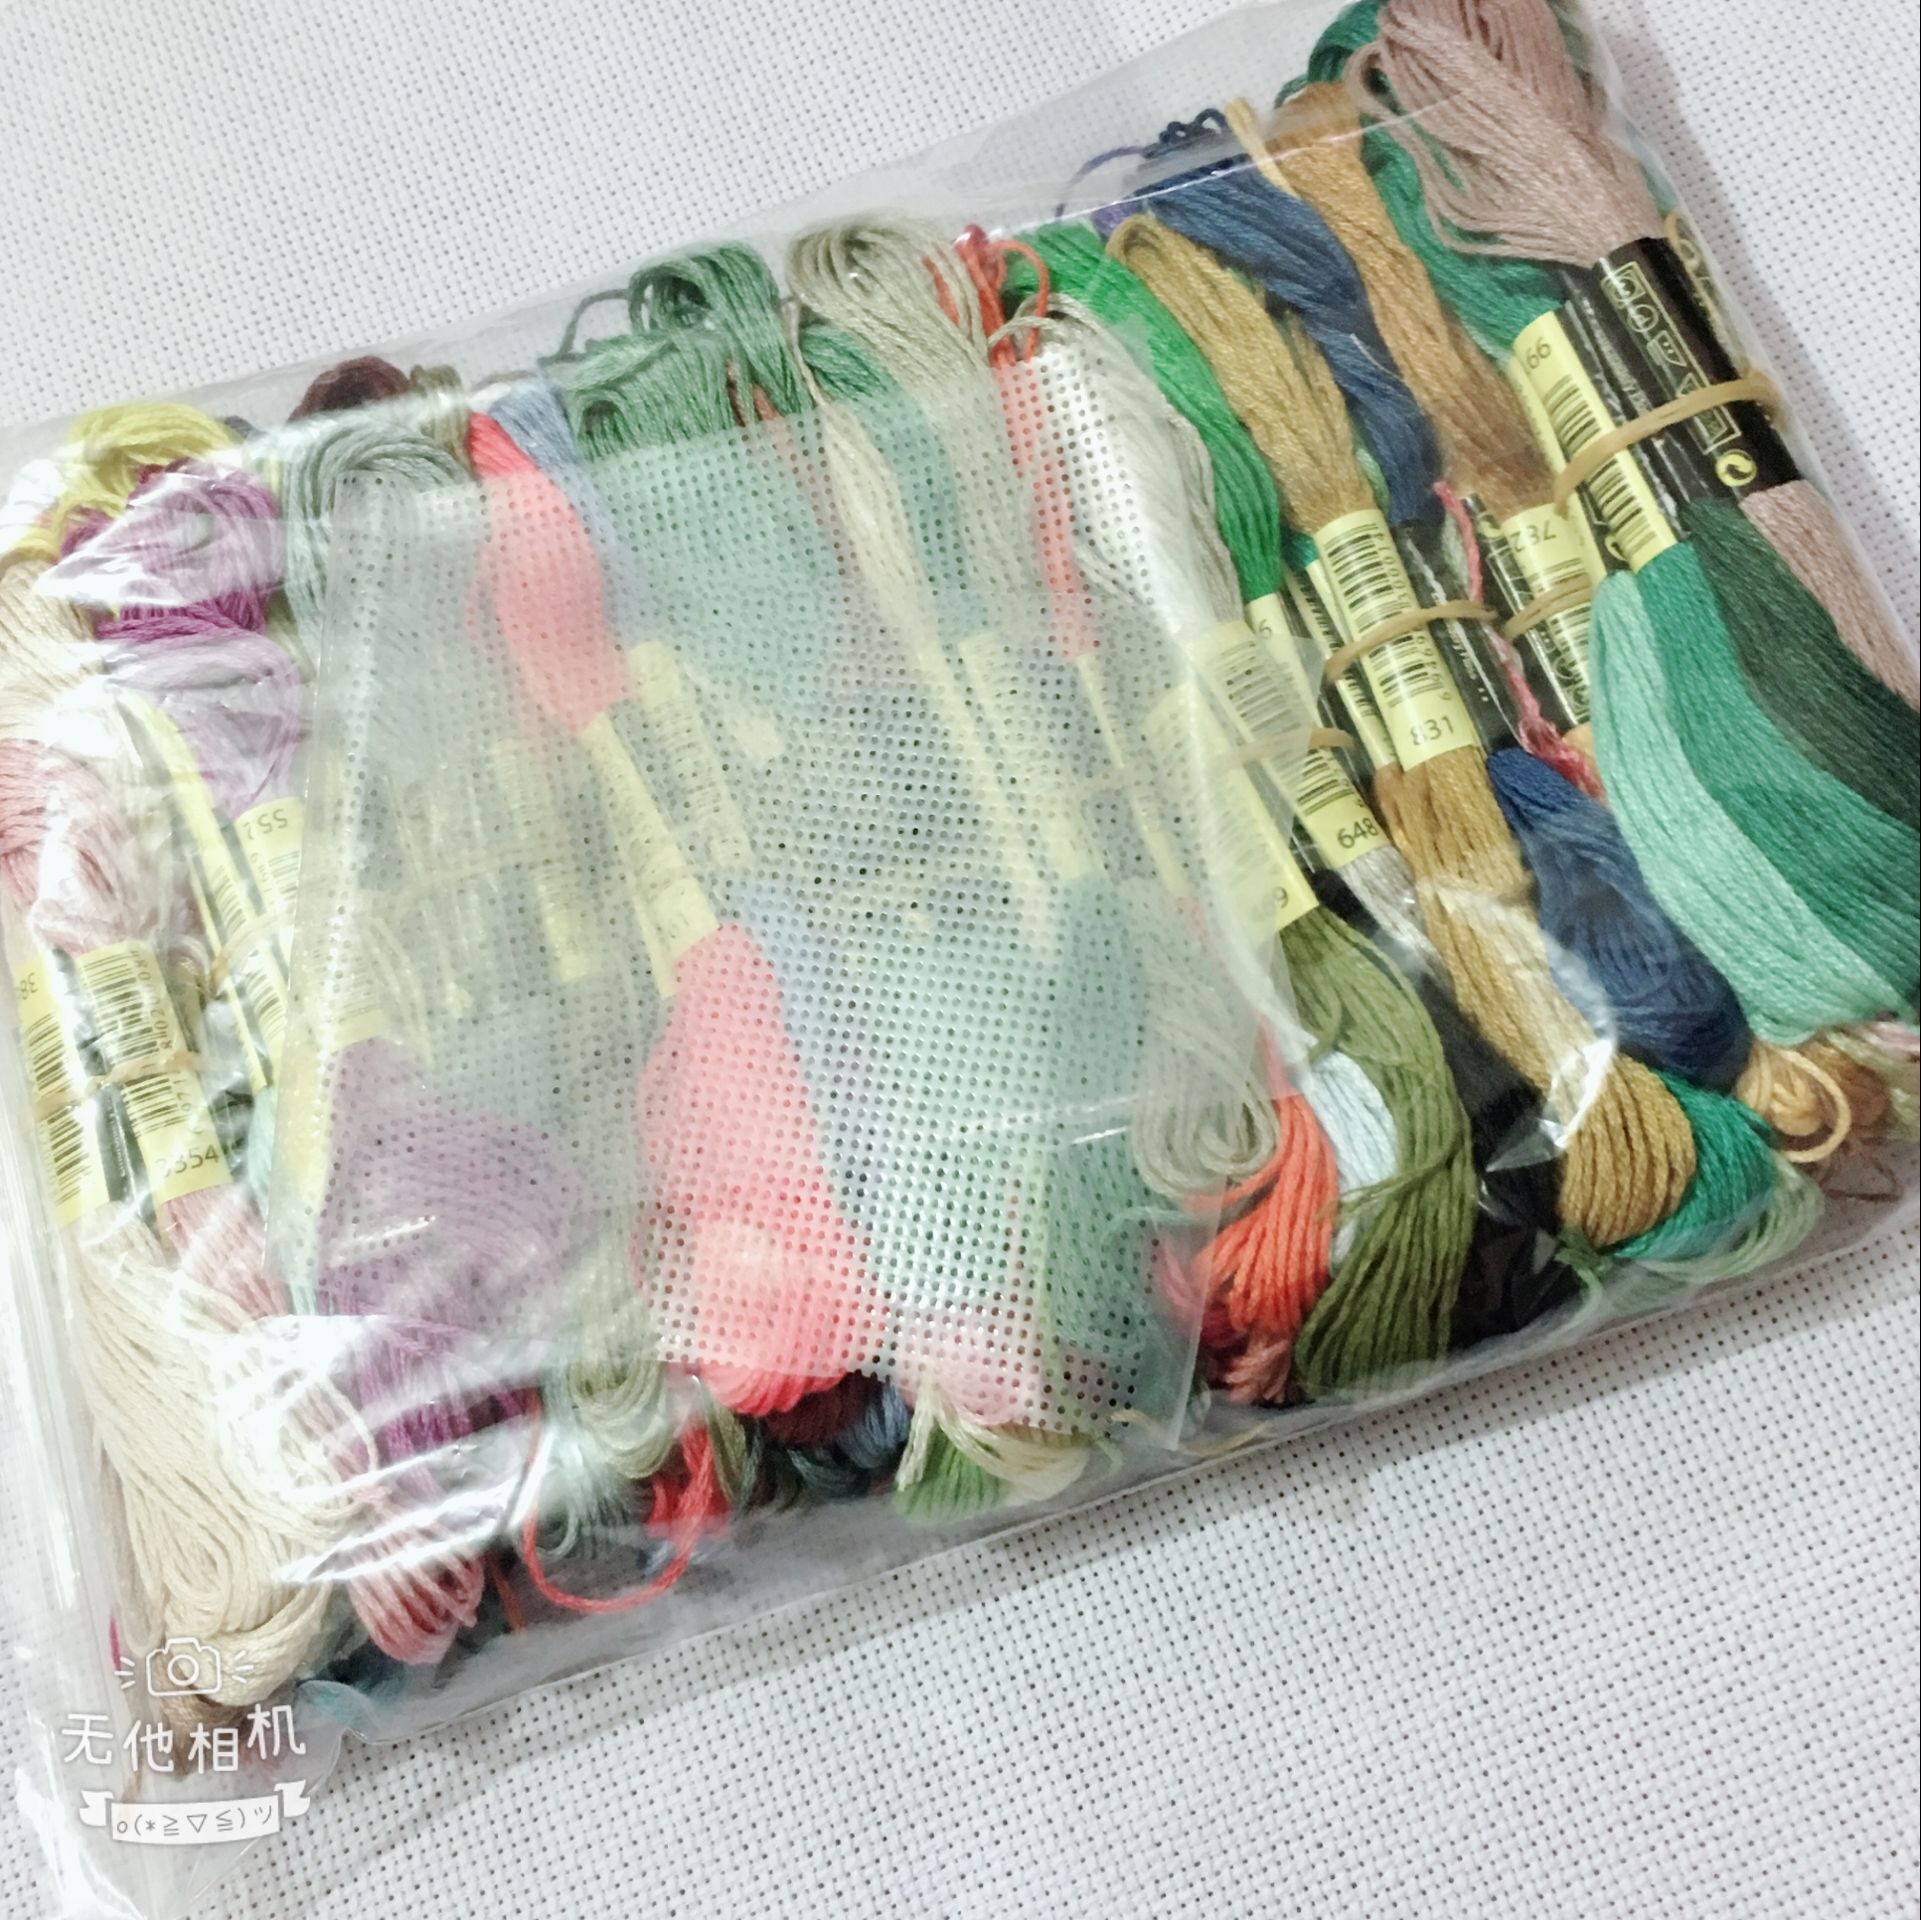 Full Set Of 447 Colors Colors Similar DMC Cotton Cross Stitch Embroidery Thread Floss Yarn +GIFT 22x10cm Water Soluble Canvas